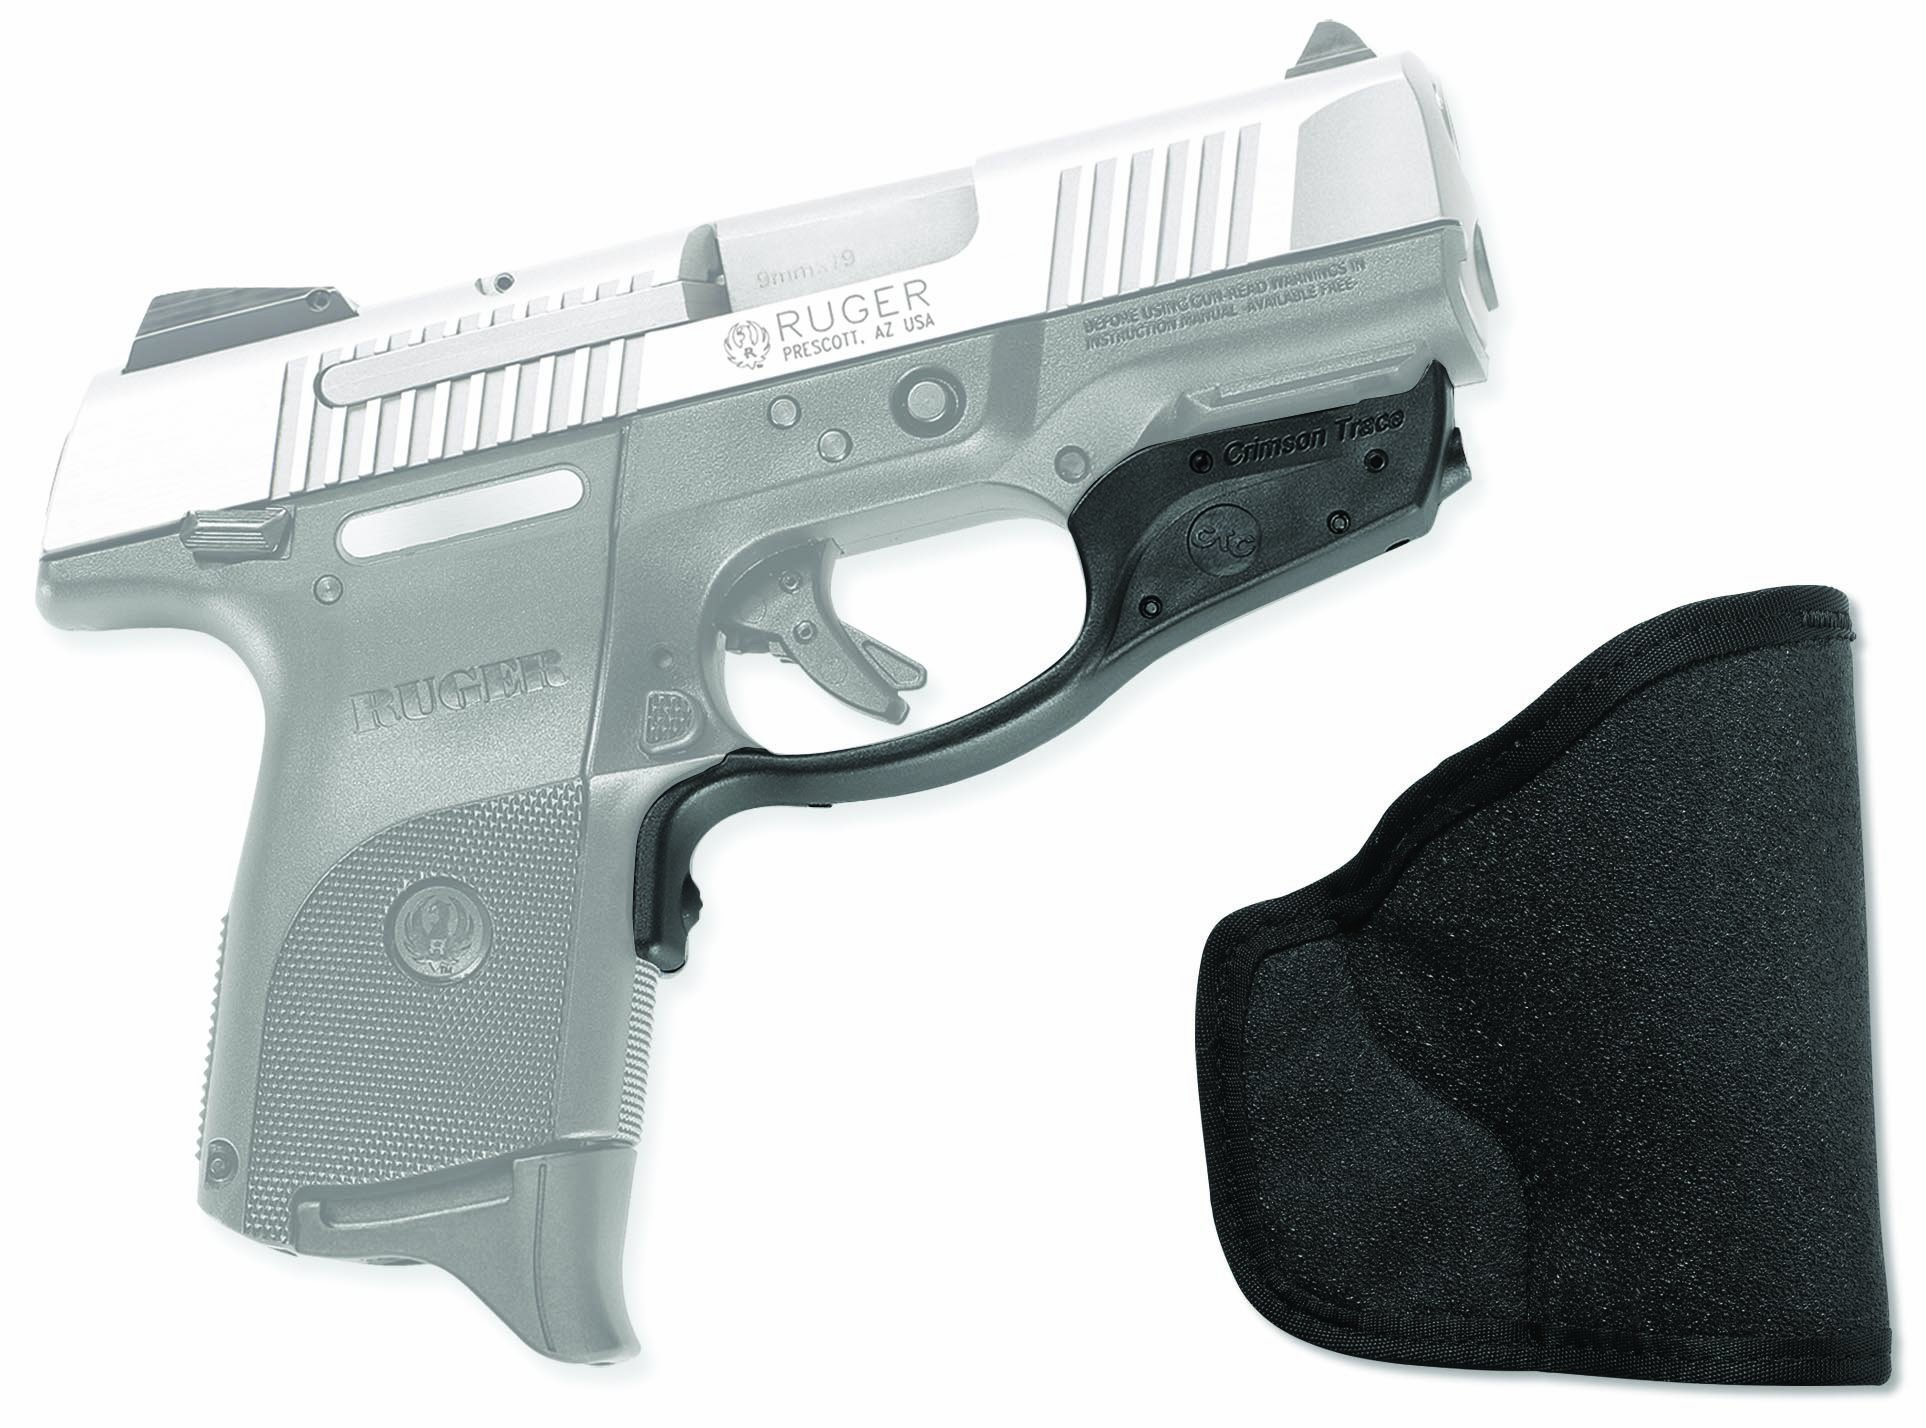 Crimson Trace LG-449 Laserguard Red Laser Sight for Ruger SR9c Pistols with Holster